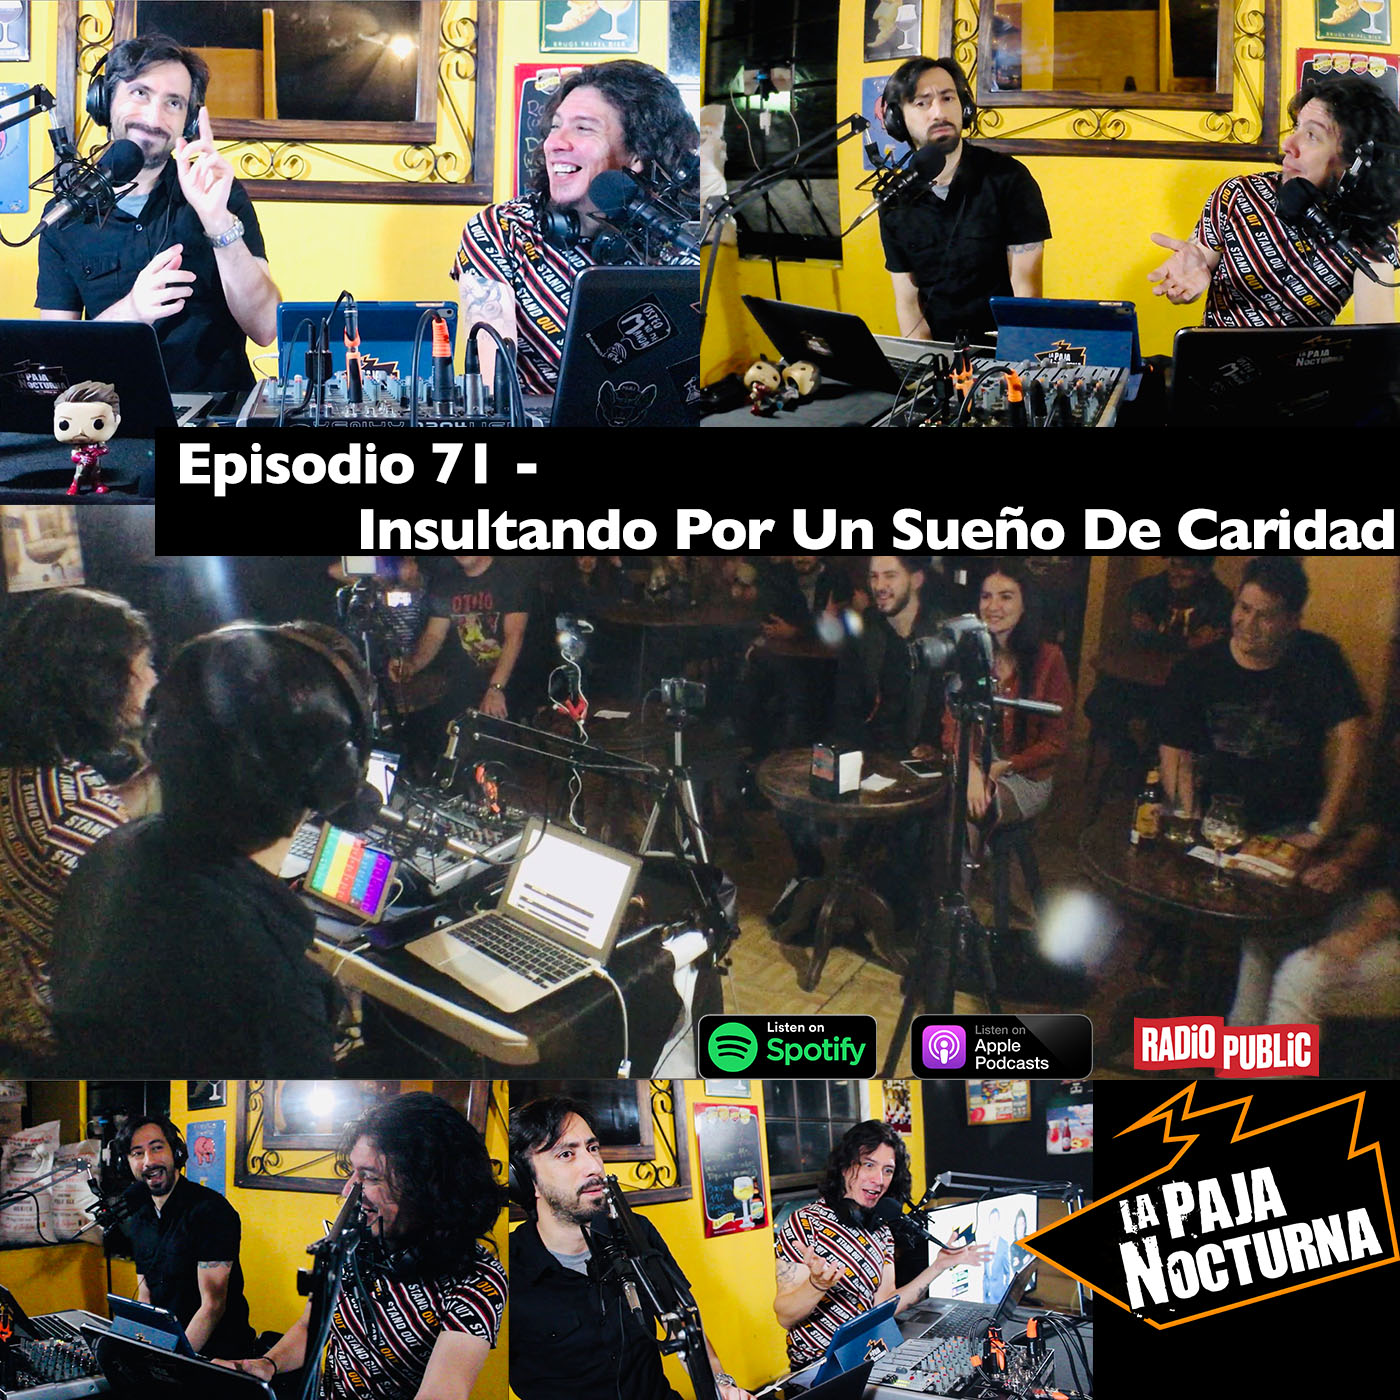 La paja nocturna podcast Episodio 71